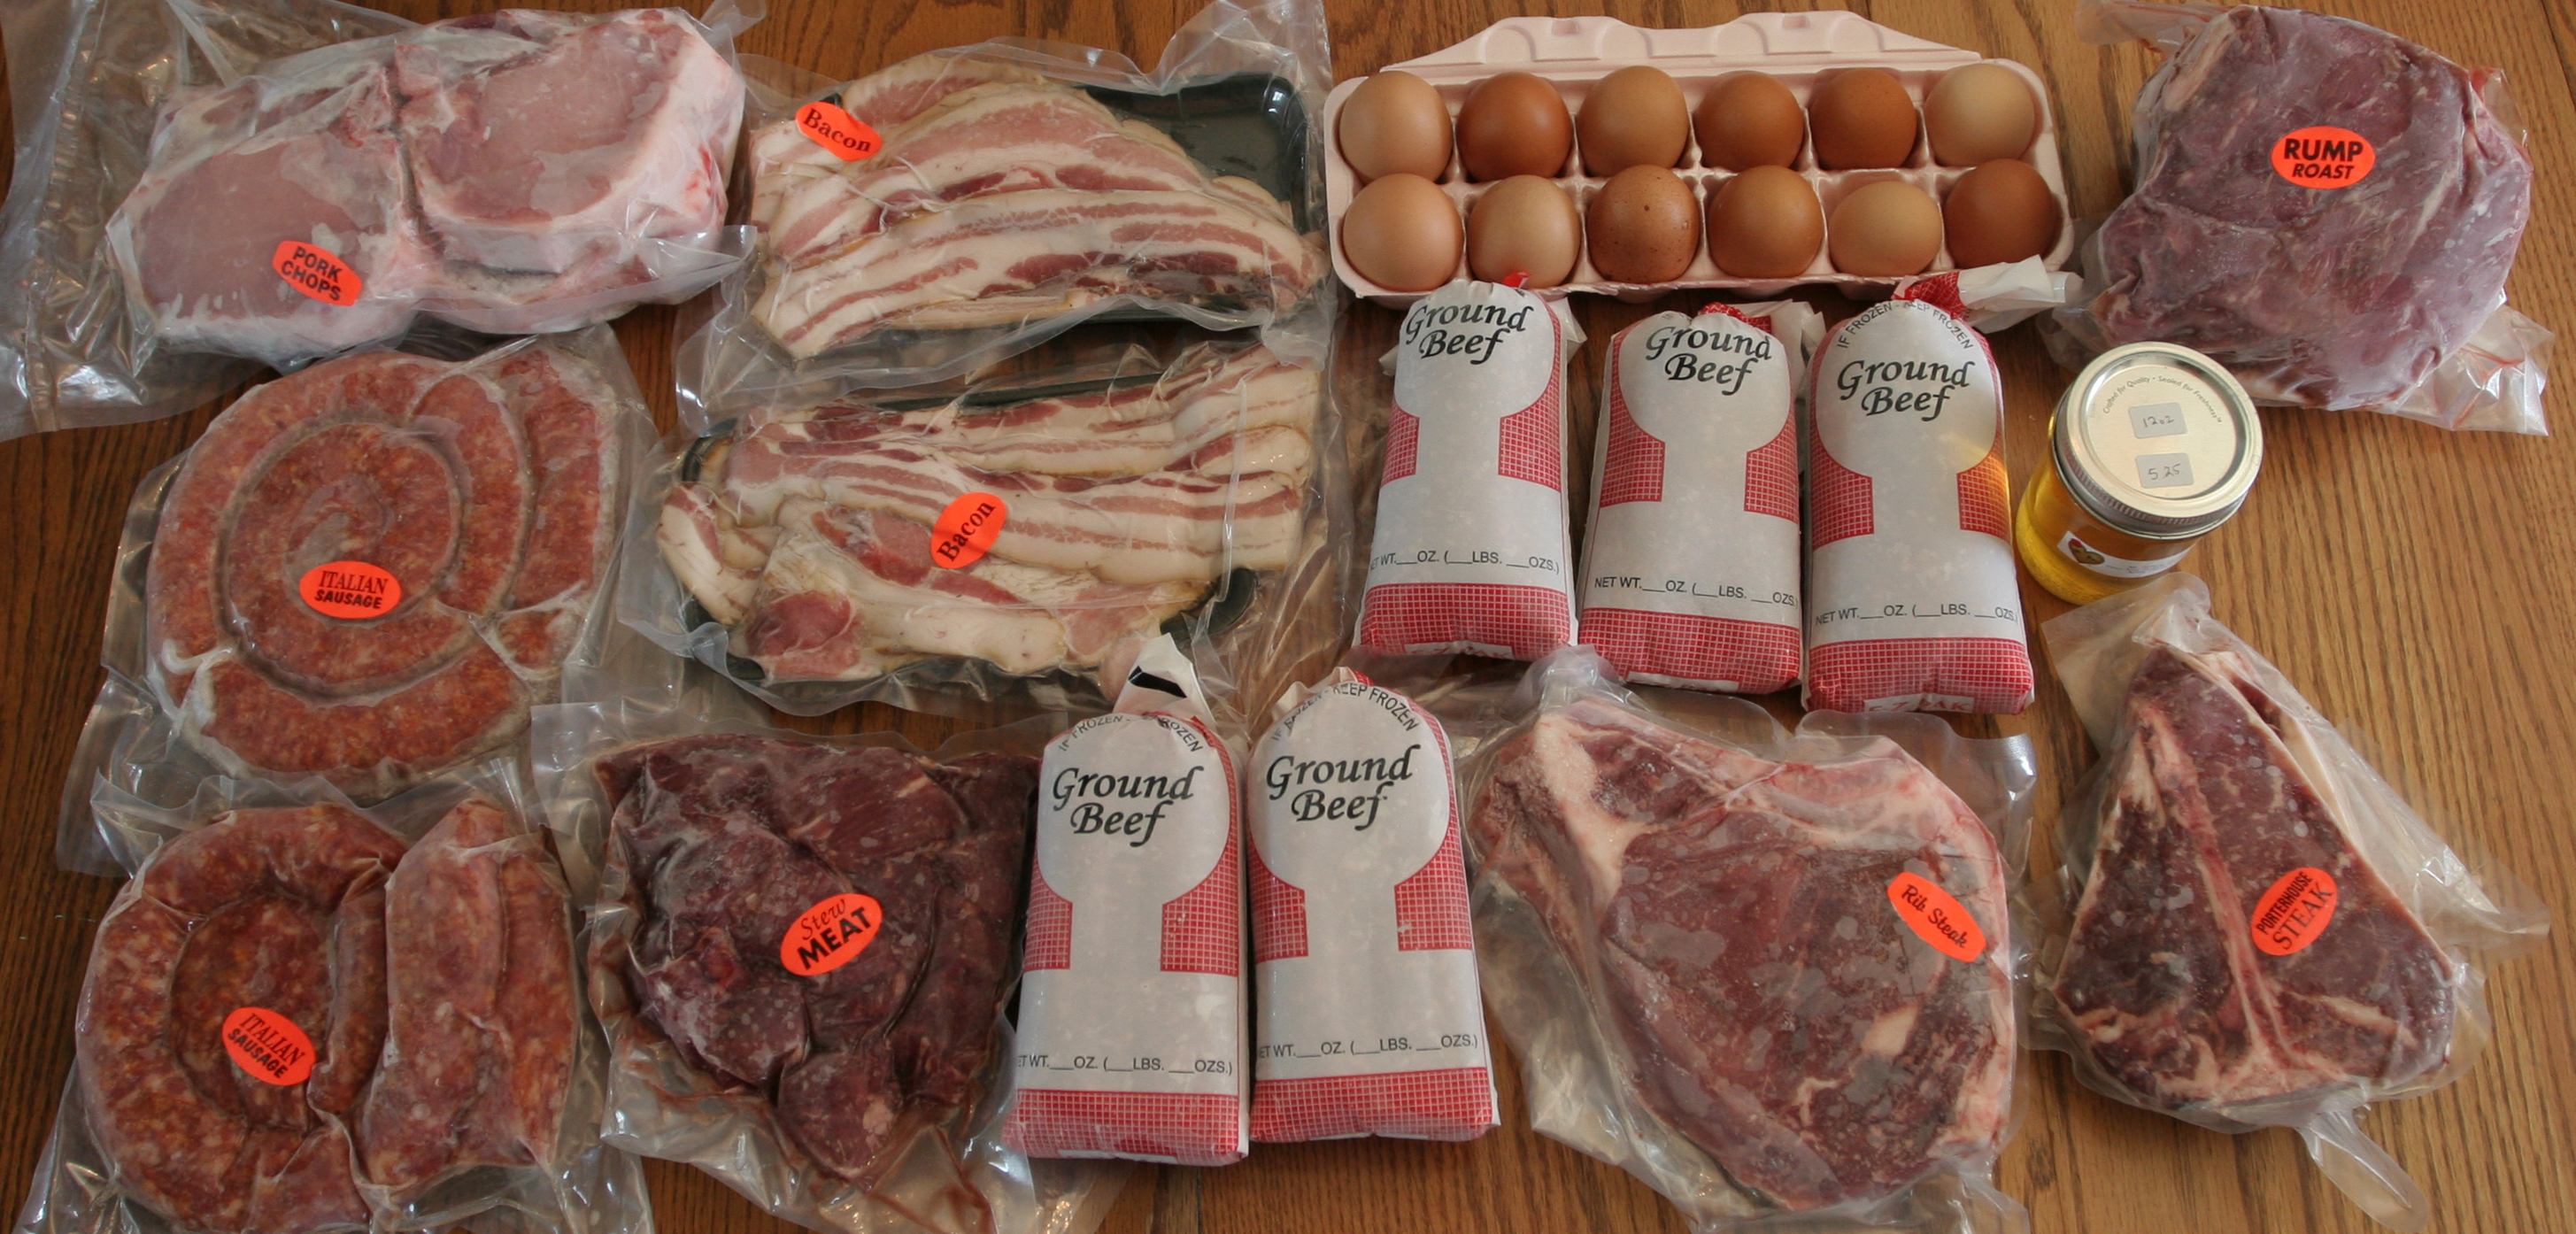 Dostall Farms - All natural, grass and corn fed beef, pork